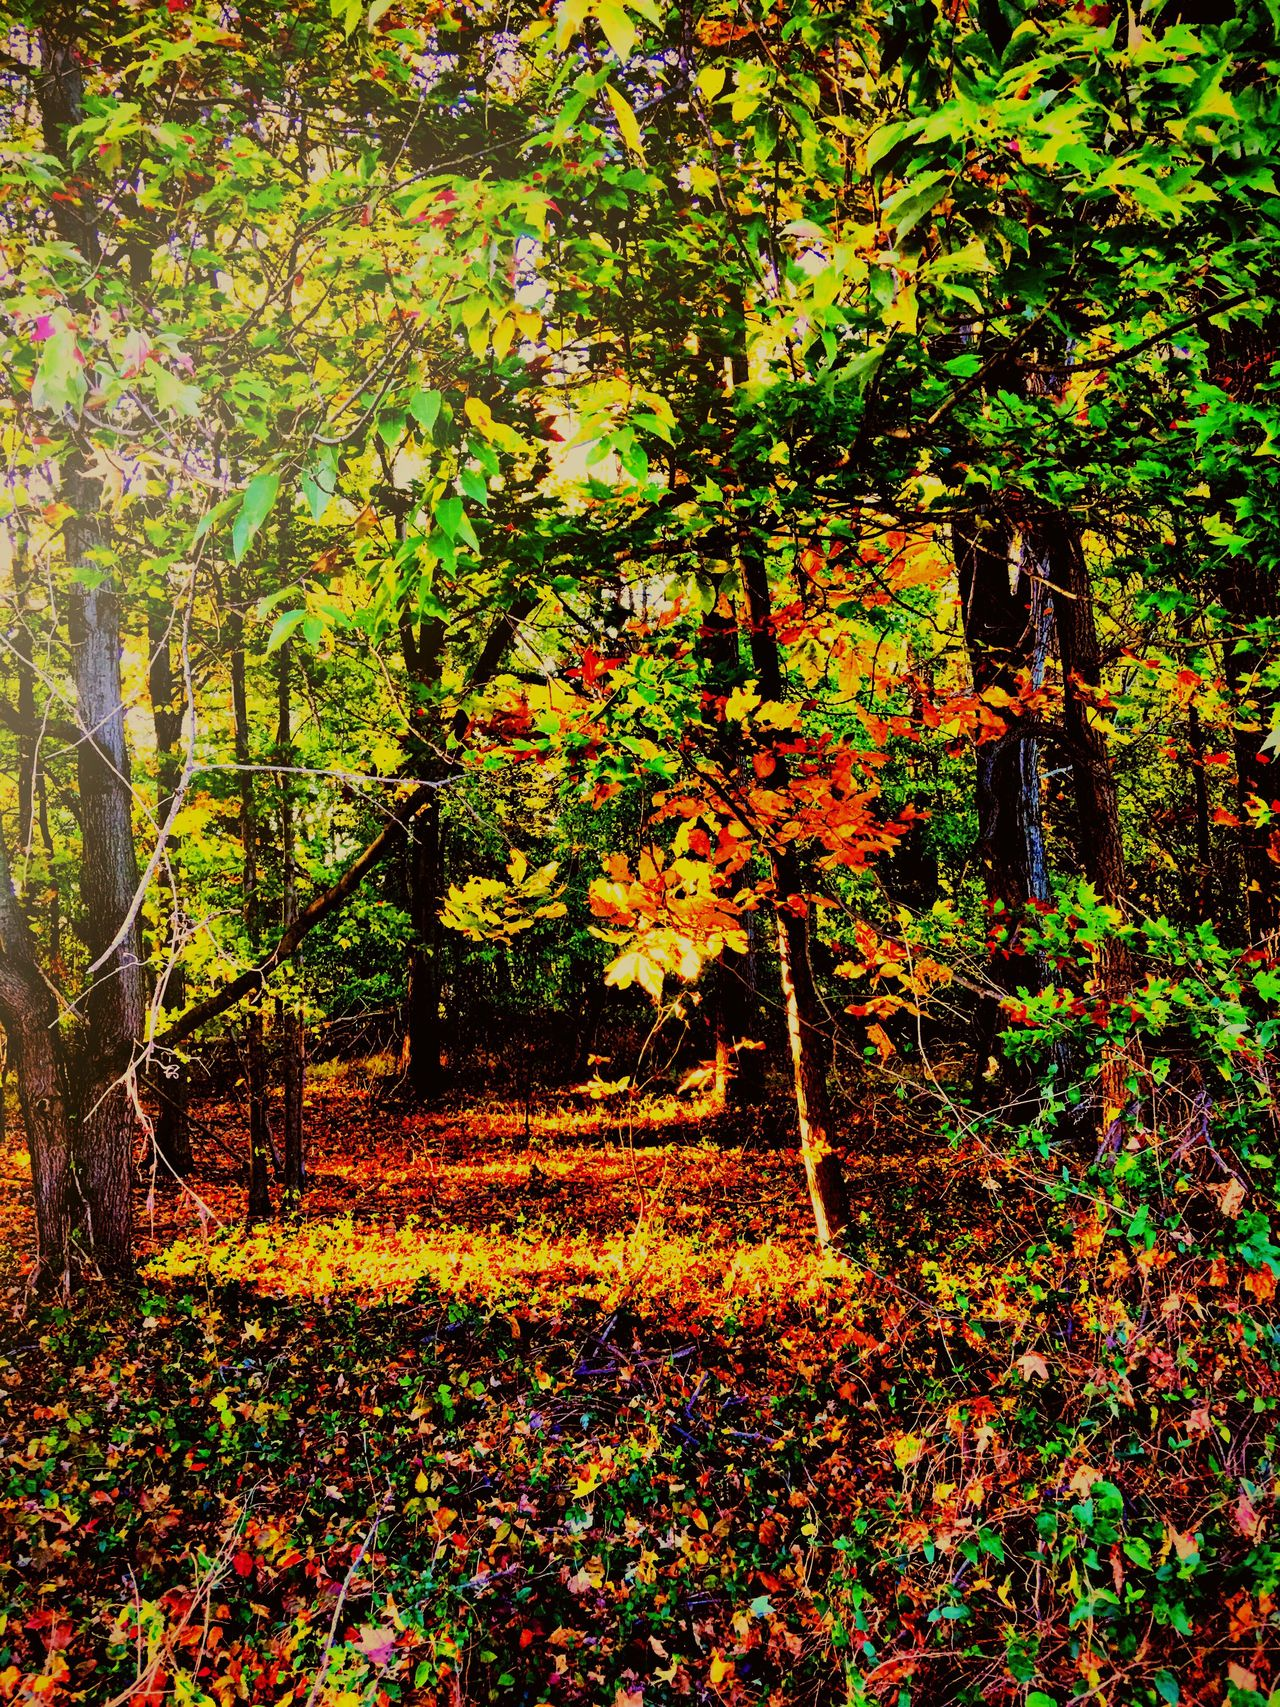 Walking in the woods Tree Nature Beauty In Nature Growth Autumn Outdoors Tranquility Forest Leaf Tranquil Scene Scenics Branch Day Tranquility Iphonephotography Fallfoliage Fall Beauty Colorphotography Camerafilters